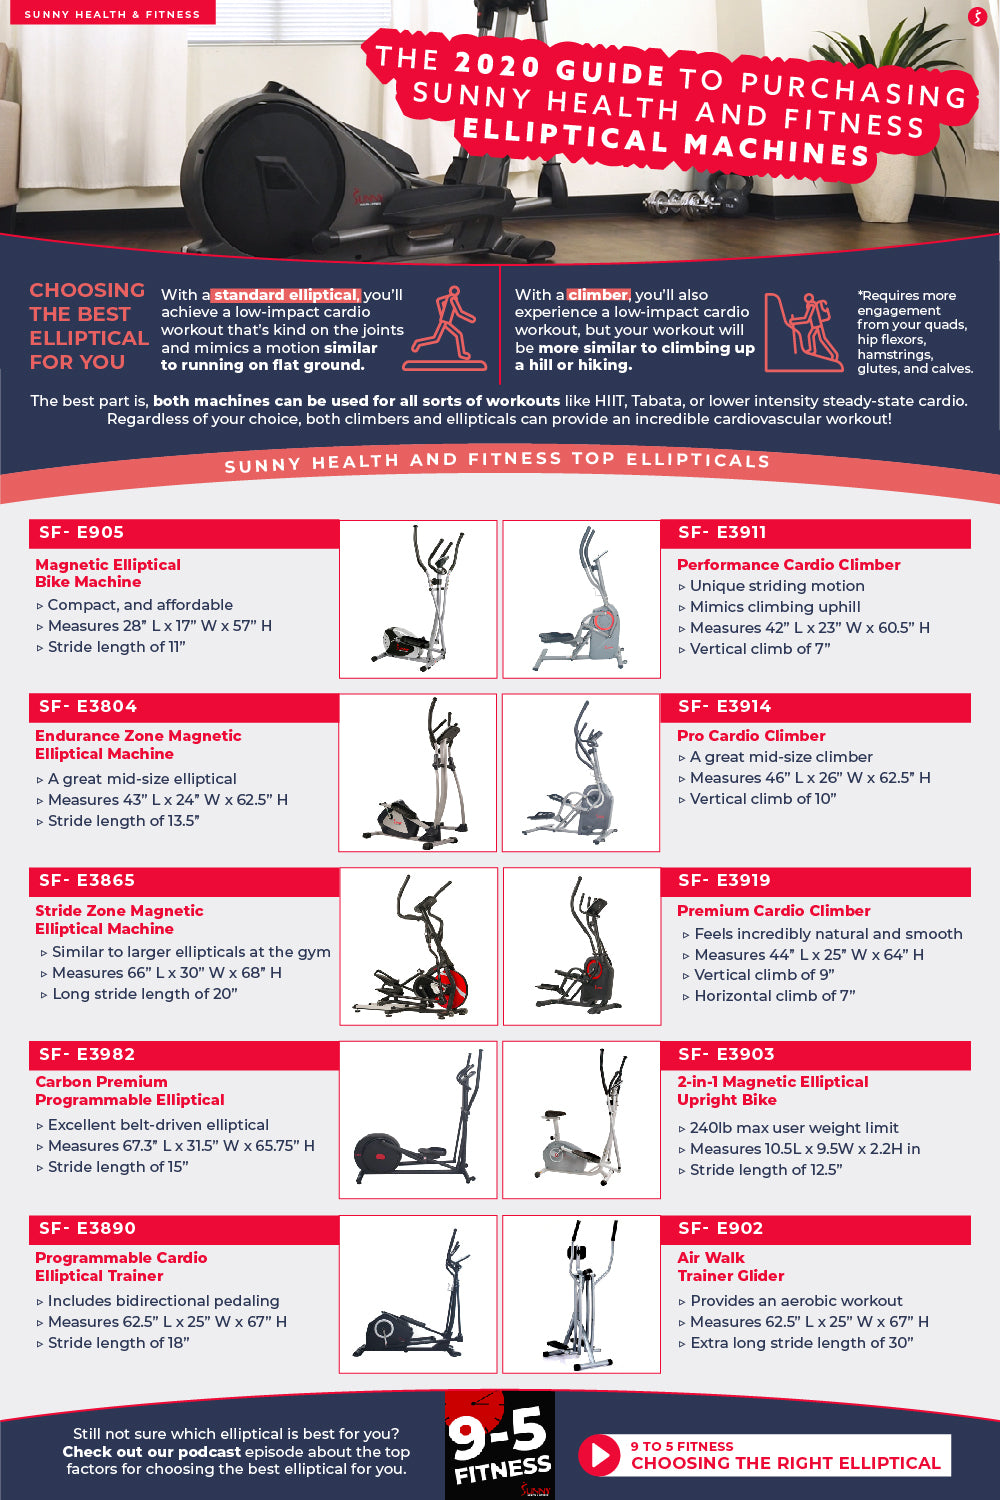 The 2020 Guide to Purchasing Sunny Health and Fitness Elliptical Machines Infographic